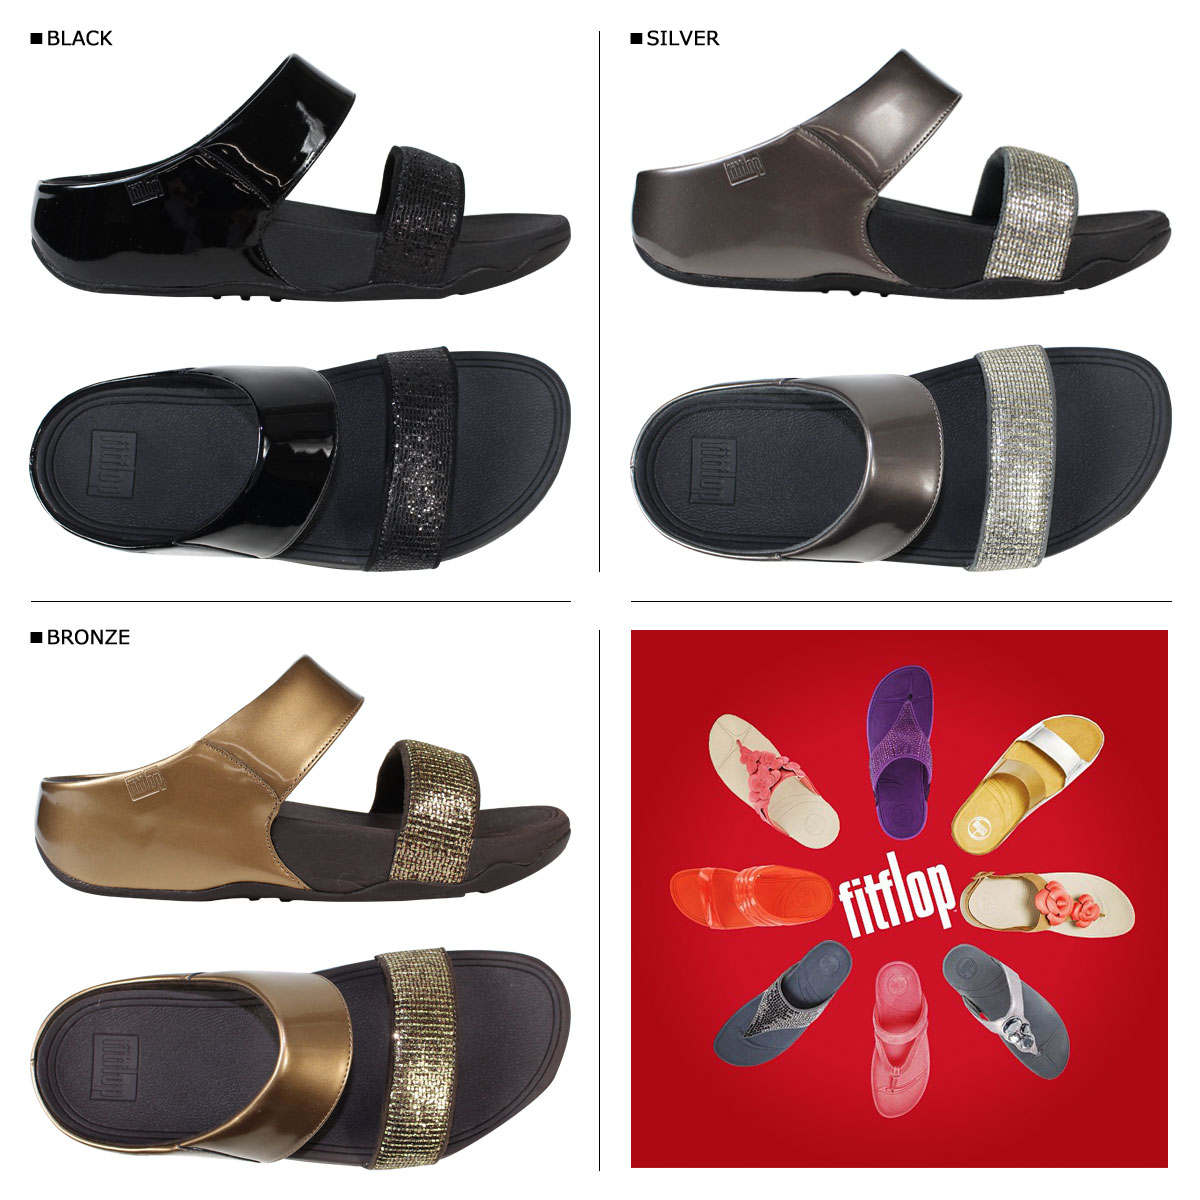 44f3d576f ... the density put a diverse focus on the fit flop Sandals first. New  generation footwear brand revolutionized the modern shoe industry does not  understand ...